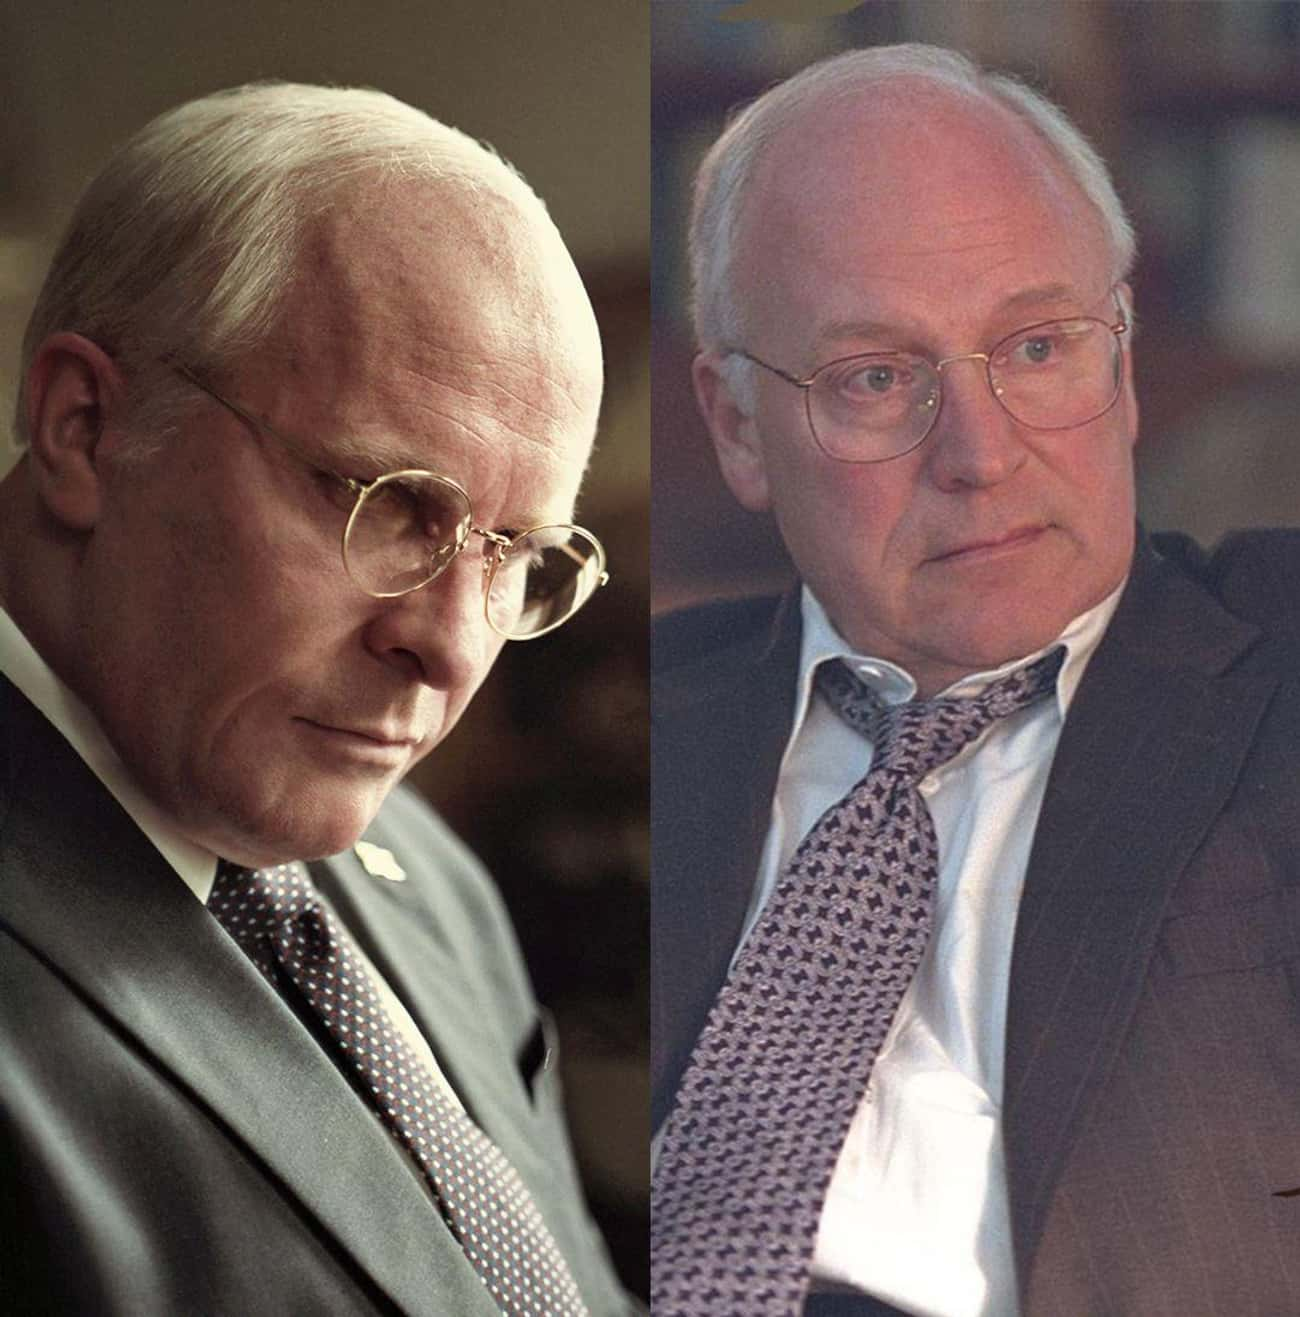 Christian Bale Vs. Dick Cheney is listed (or ranked) 4 on the list 21 Actors Vs. The Historical Figures They Portrayed On-Screen